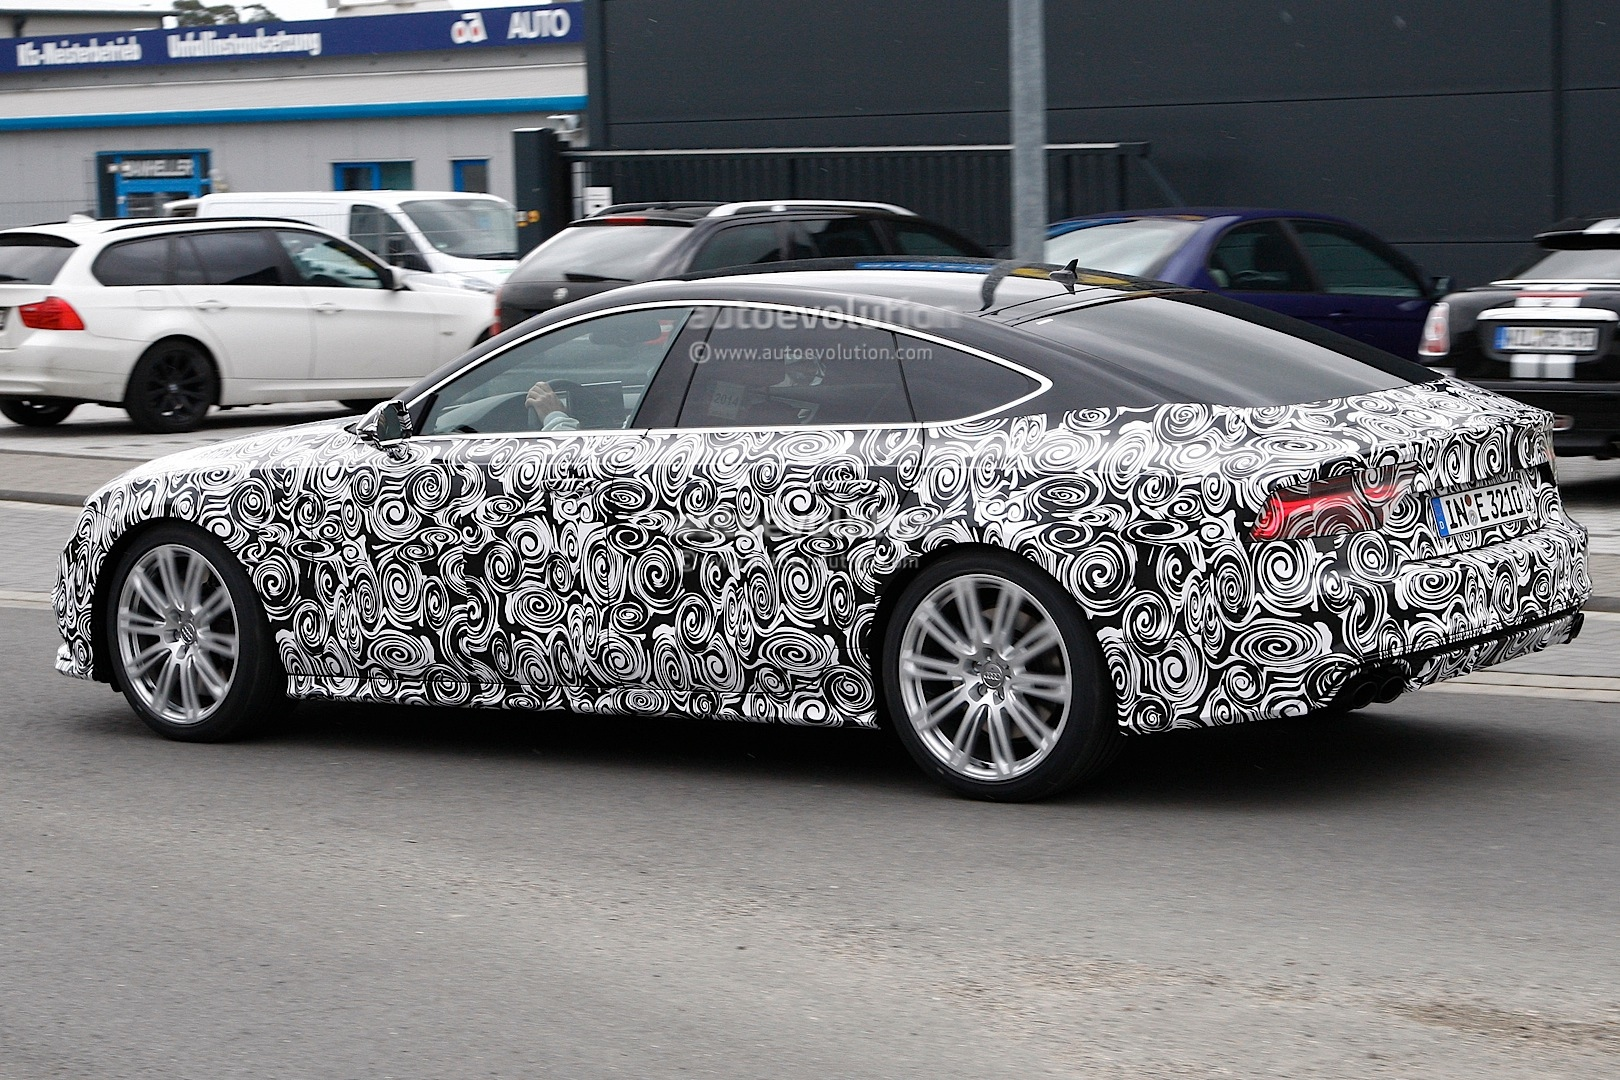 2014 - [Audi] A7 & S7 Sportback Restylée - Page 3 Spyshots-2015-audi-s7-facelift-has-a-new-grille-and-headlights_4